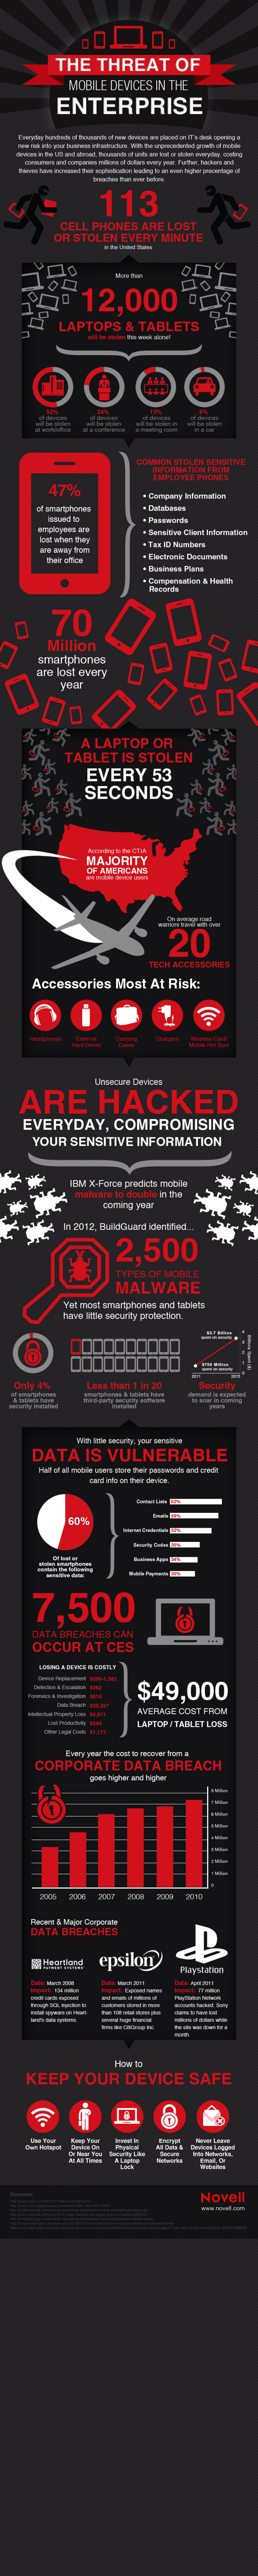 The Threat of Mobile Devices in the Enterprise  Infographic